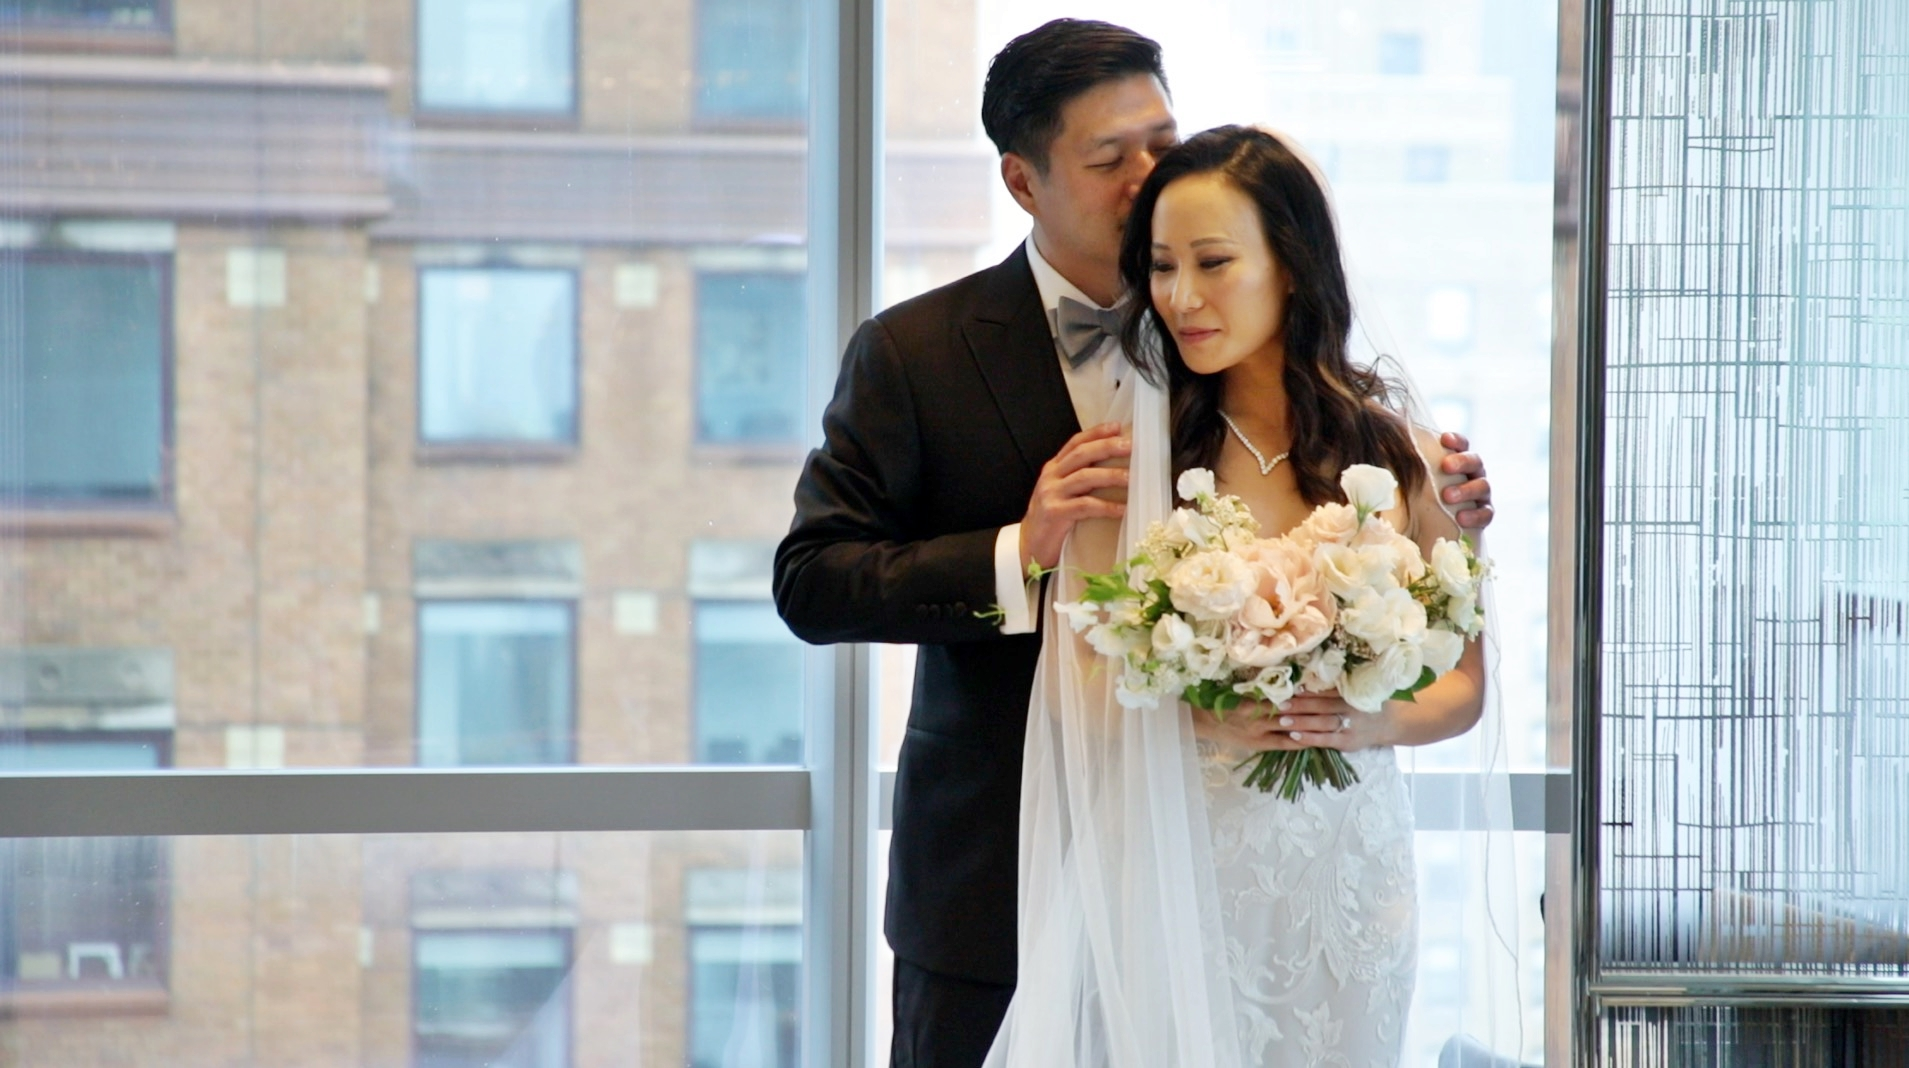 Kathy + Tom | New York, New York | Park Hyatt